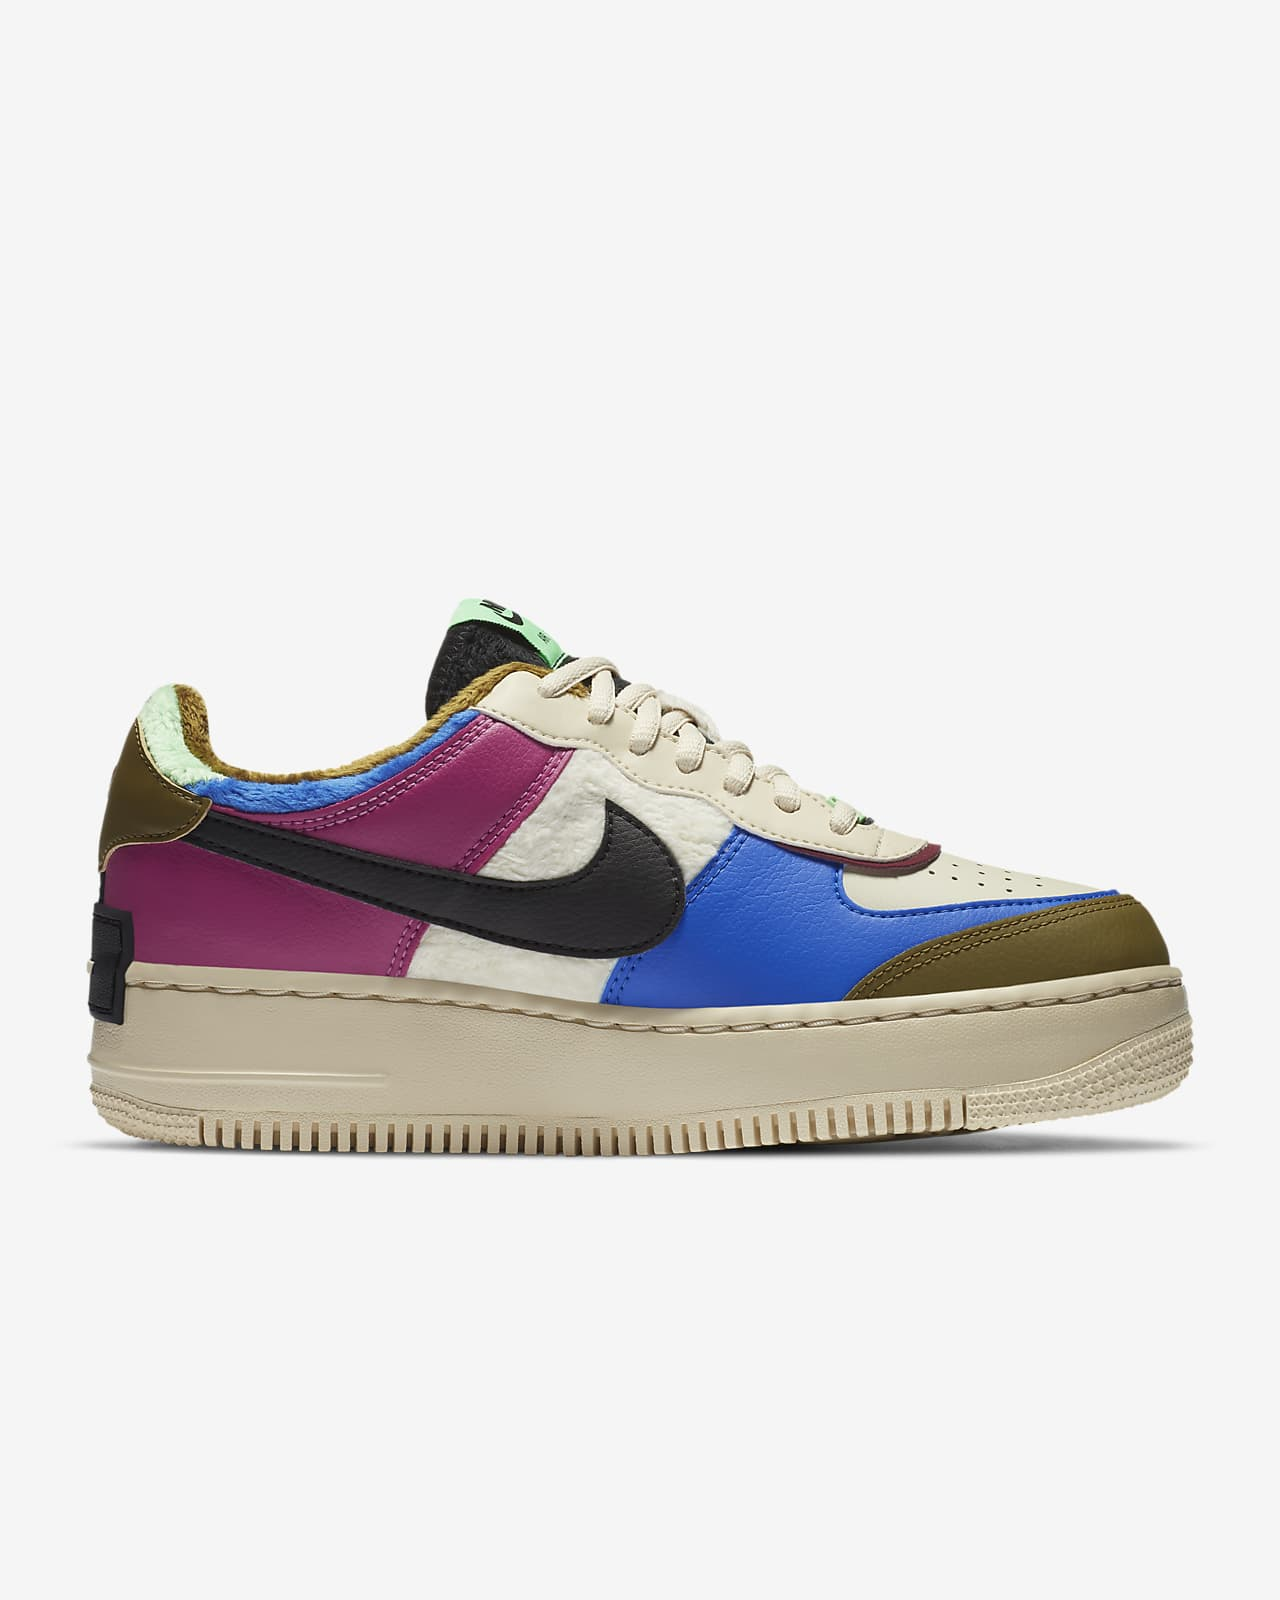 Nike Air Force 1 Shadow Se Women S Shoe Nike Jp Nike women's air force 1 shadow casual shoes. nike air force 1 shadow se women s shoe